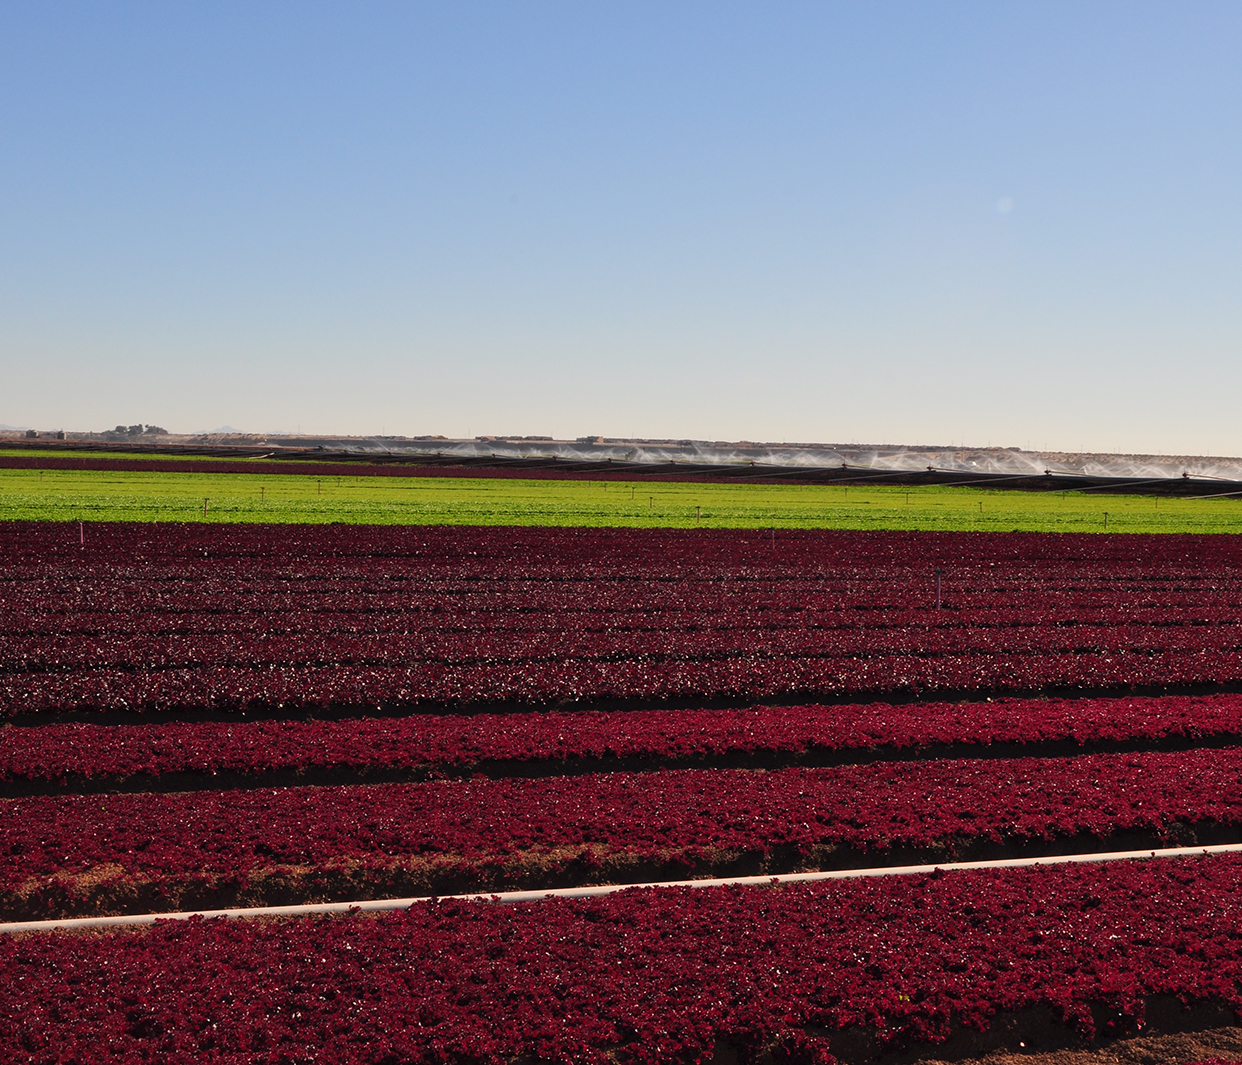 photo of red leaf lettuce in field